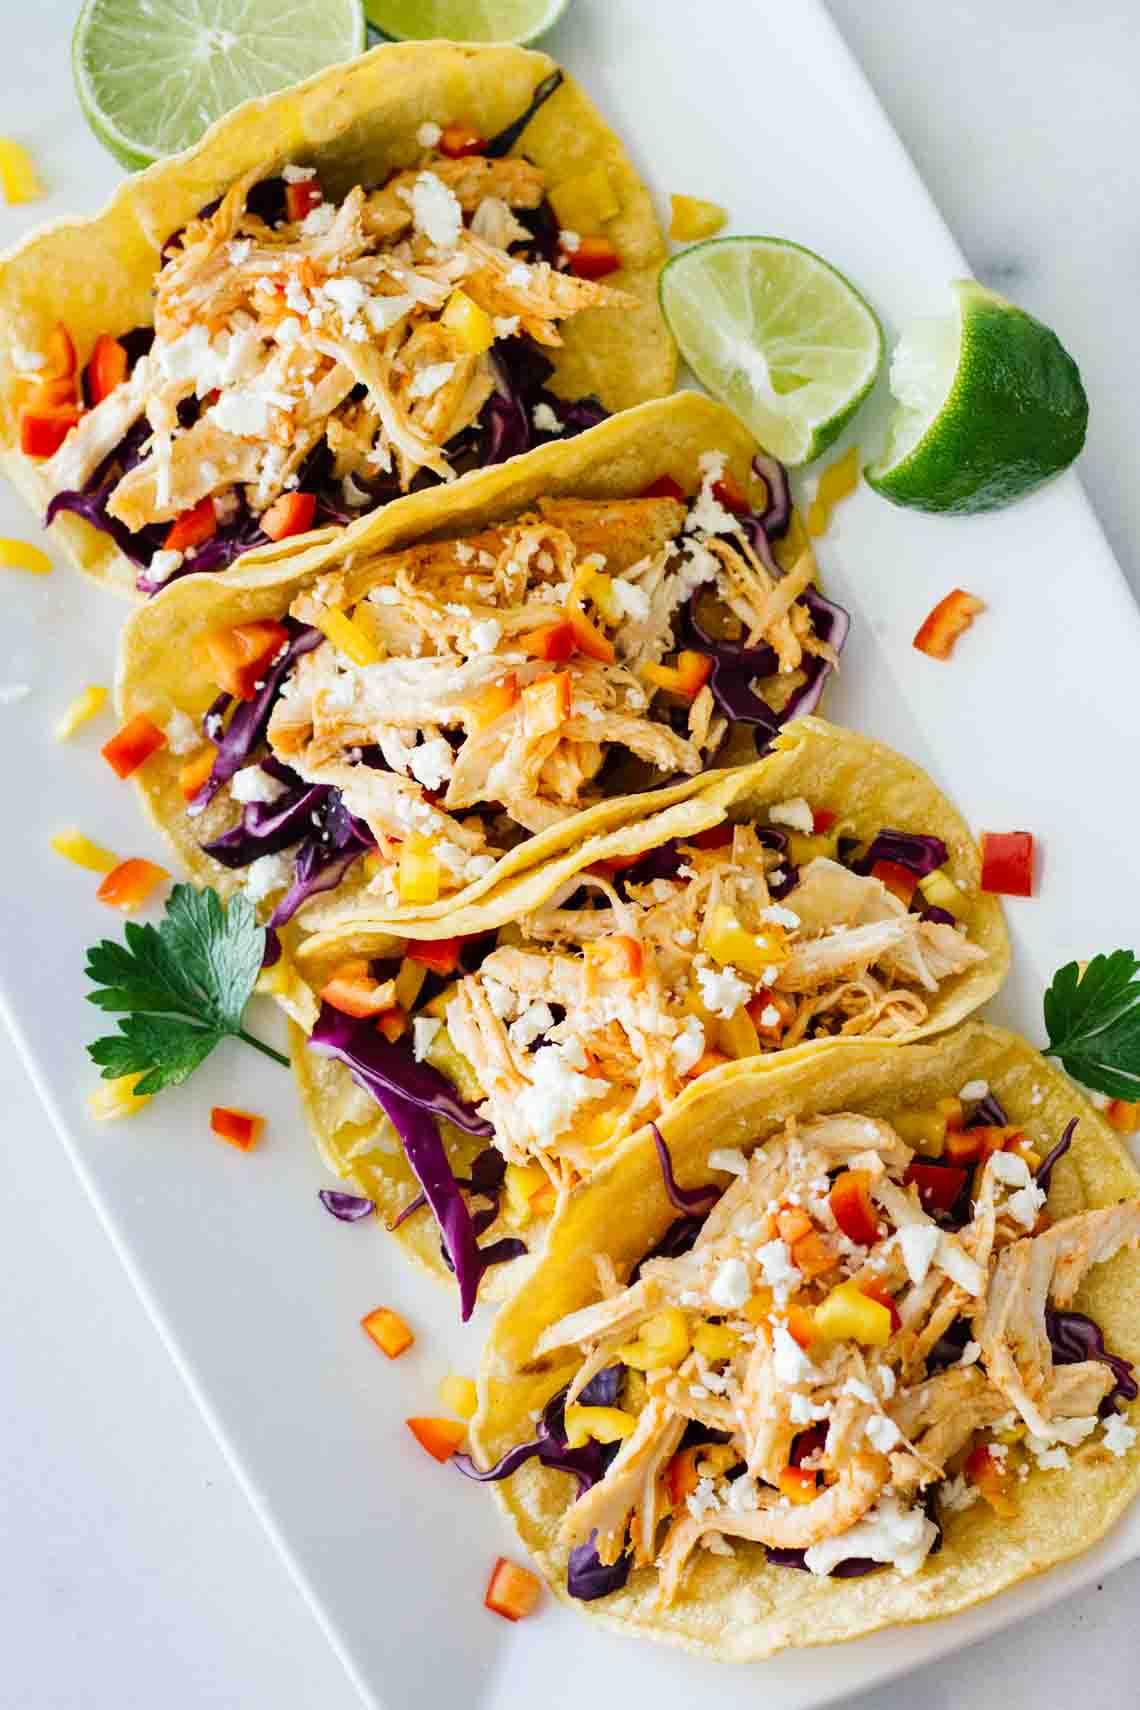 Healthy Fast Dinner  Healthy Sriracha Shredded Chicken Tacos Jar Lemons